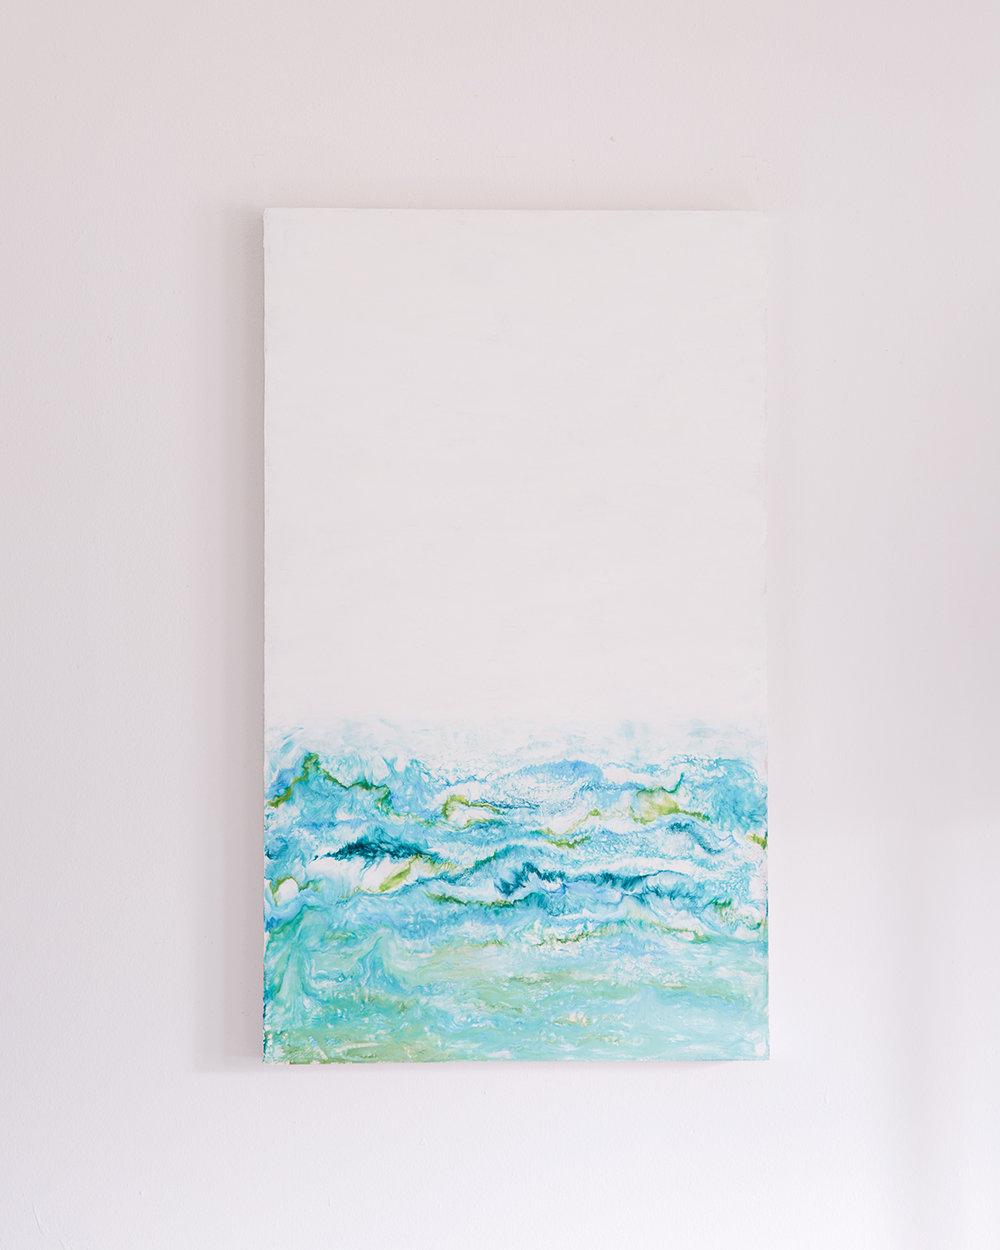 The Catalyst - My work is inspired by the horizon line where the ocean meets the sky